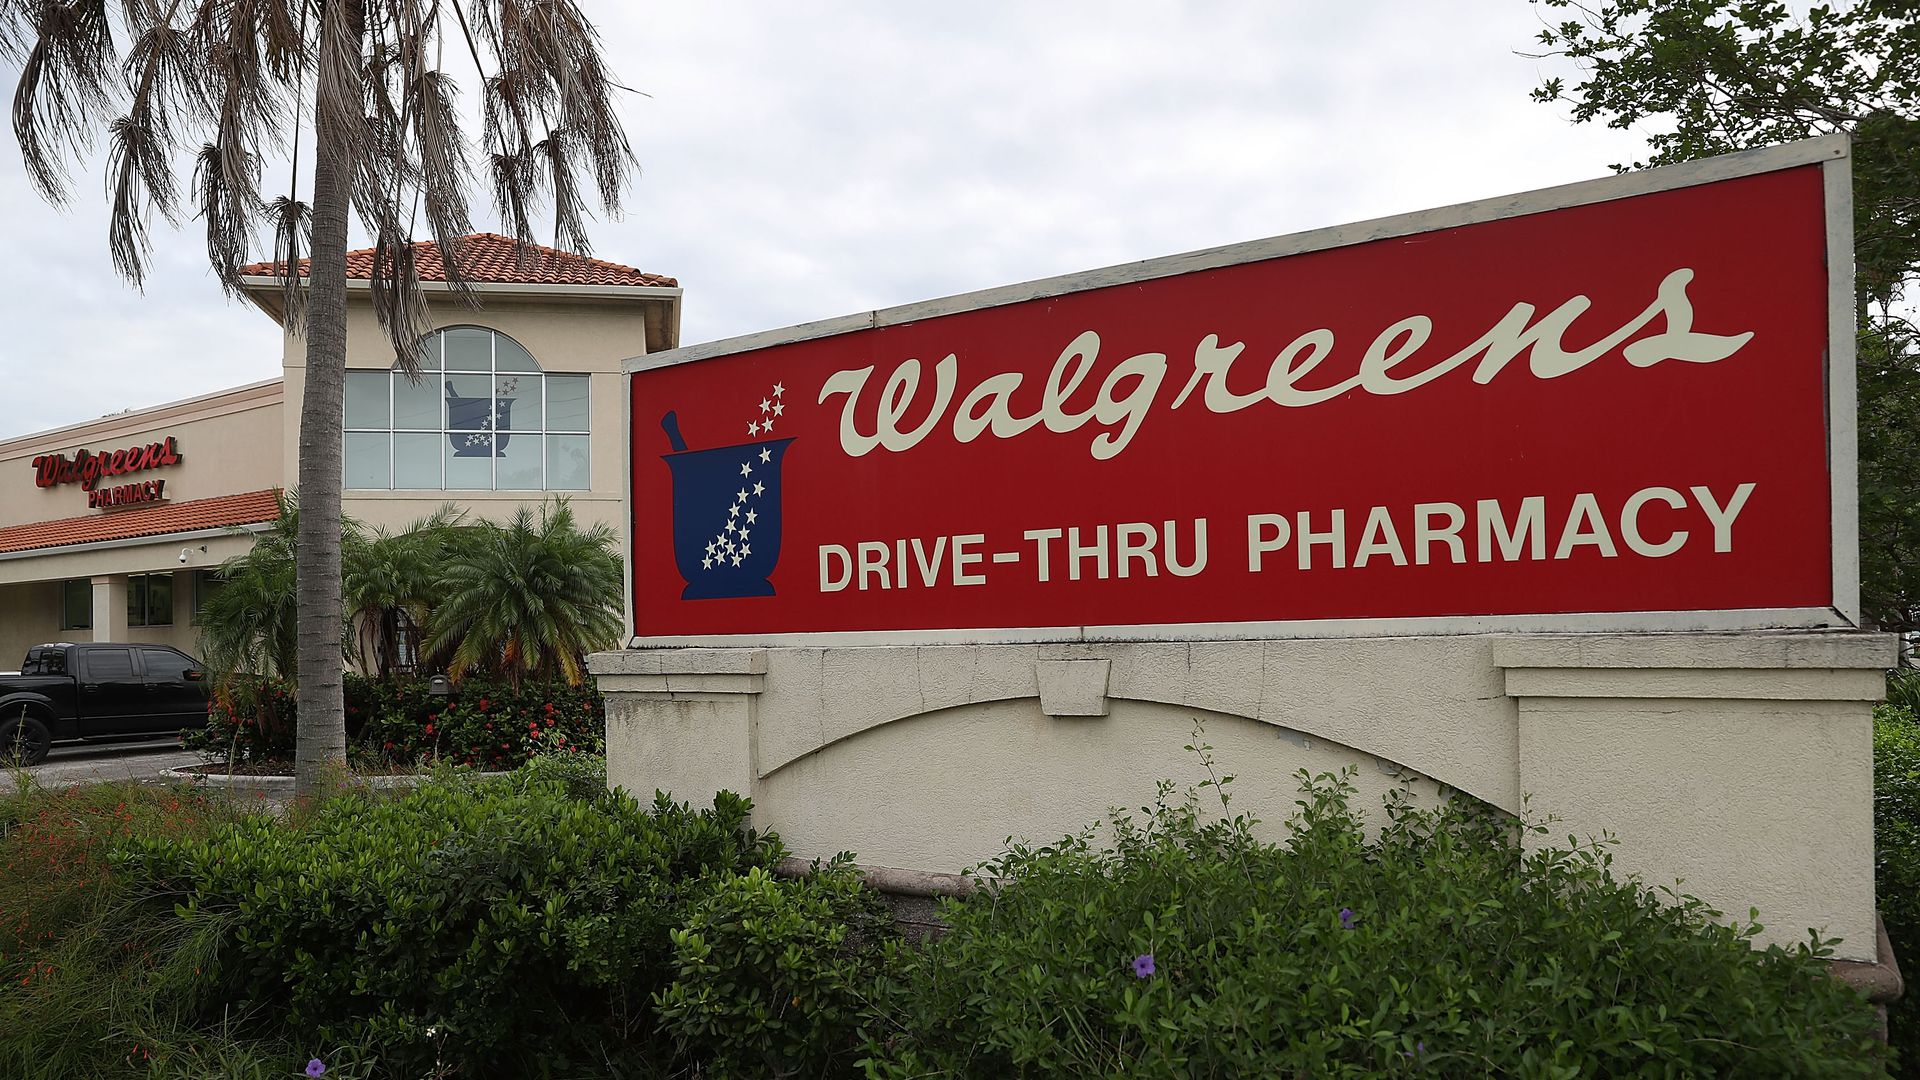 A Walgreens sign in front of the store.